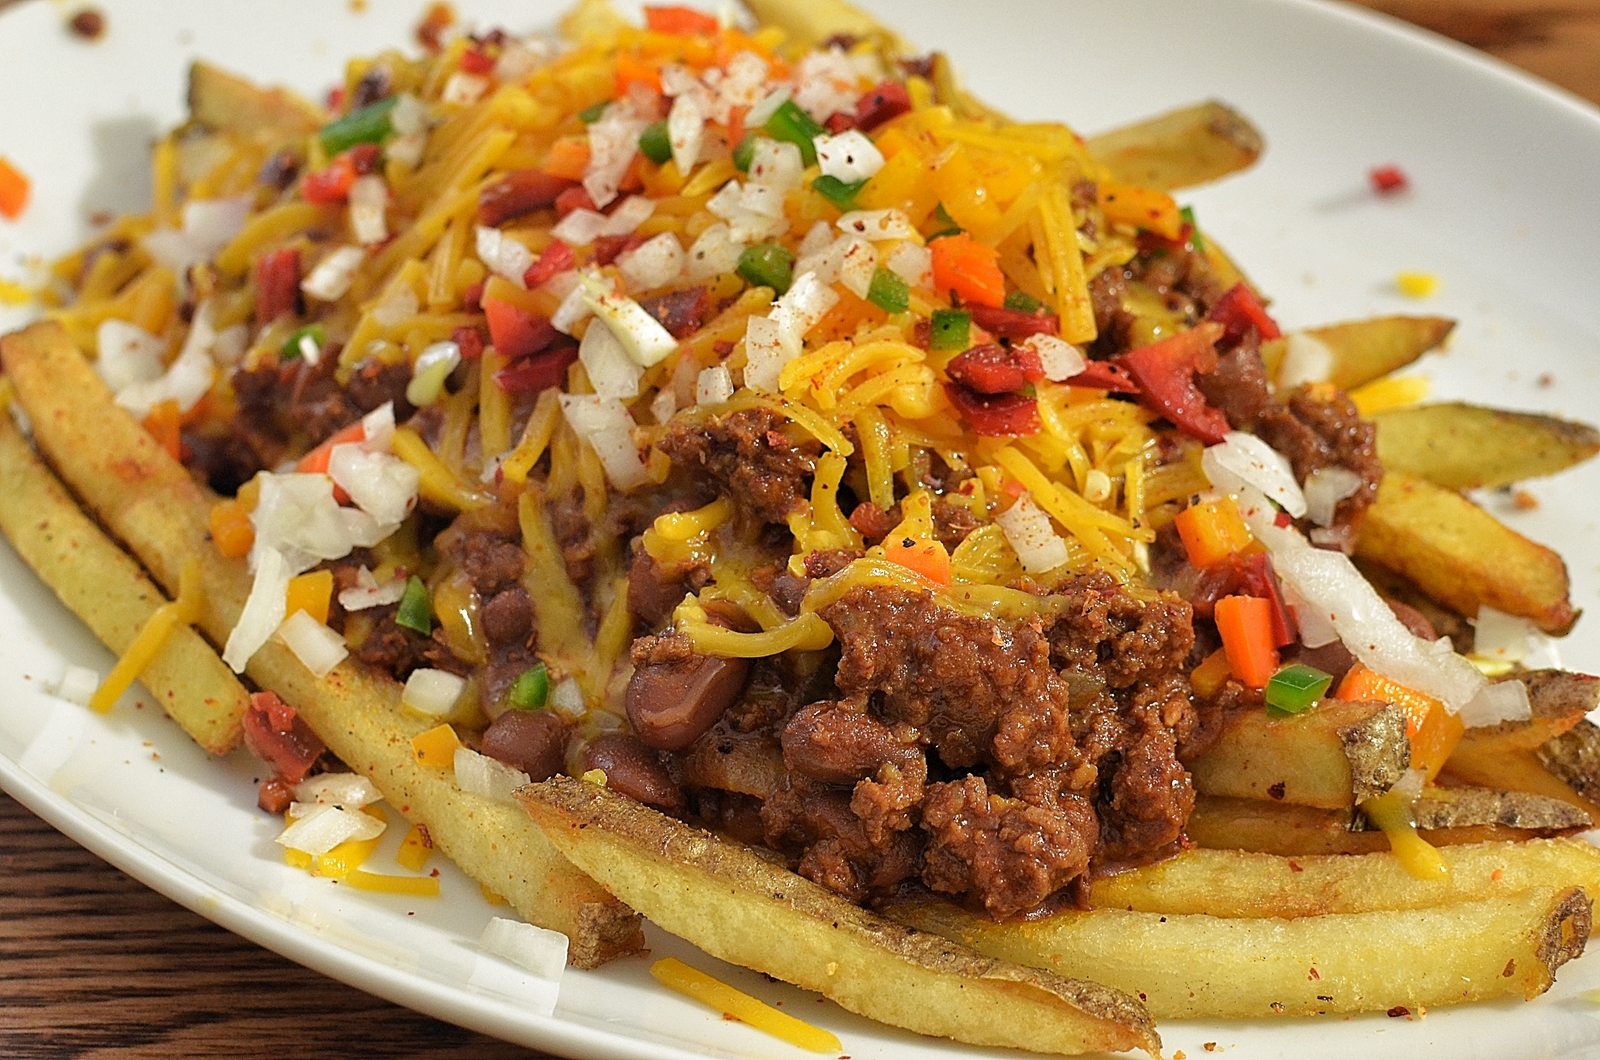 Chili Cheese Fries Chili cheese fries!